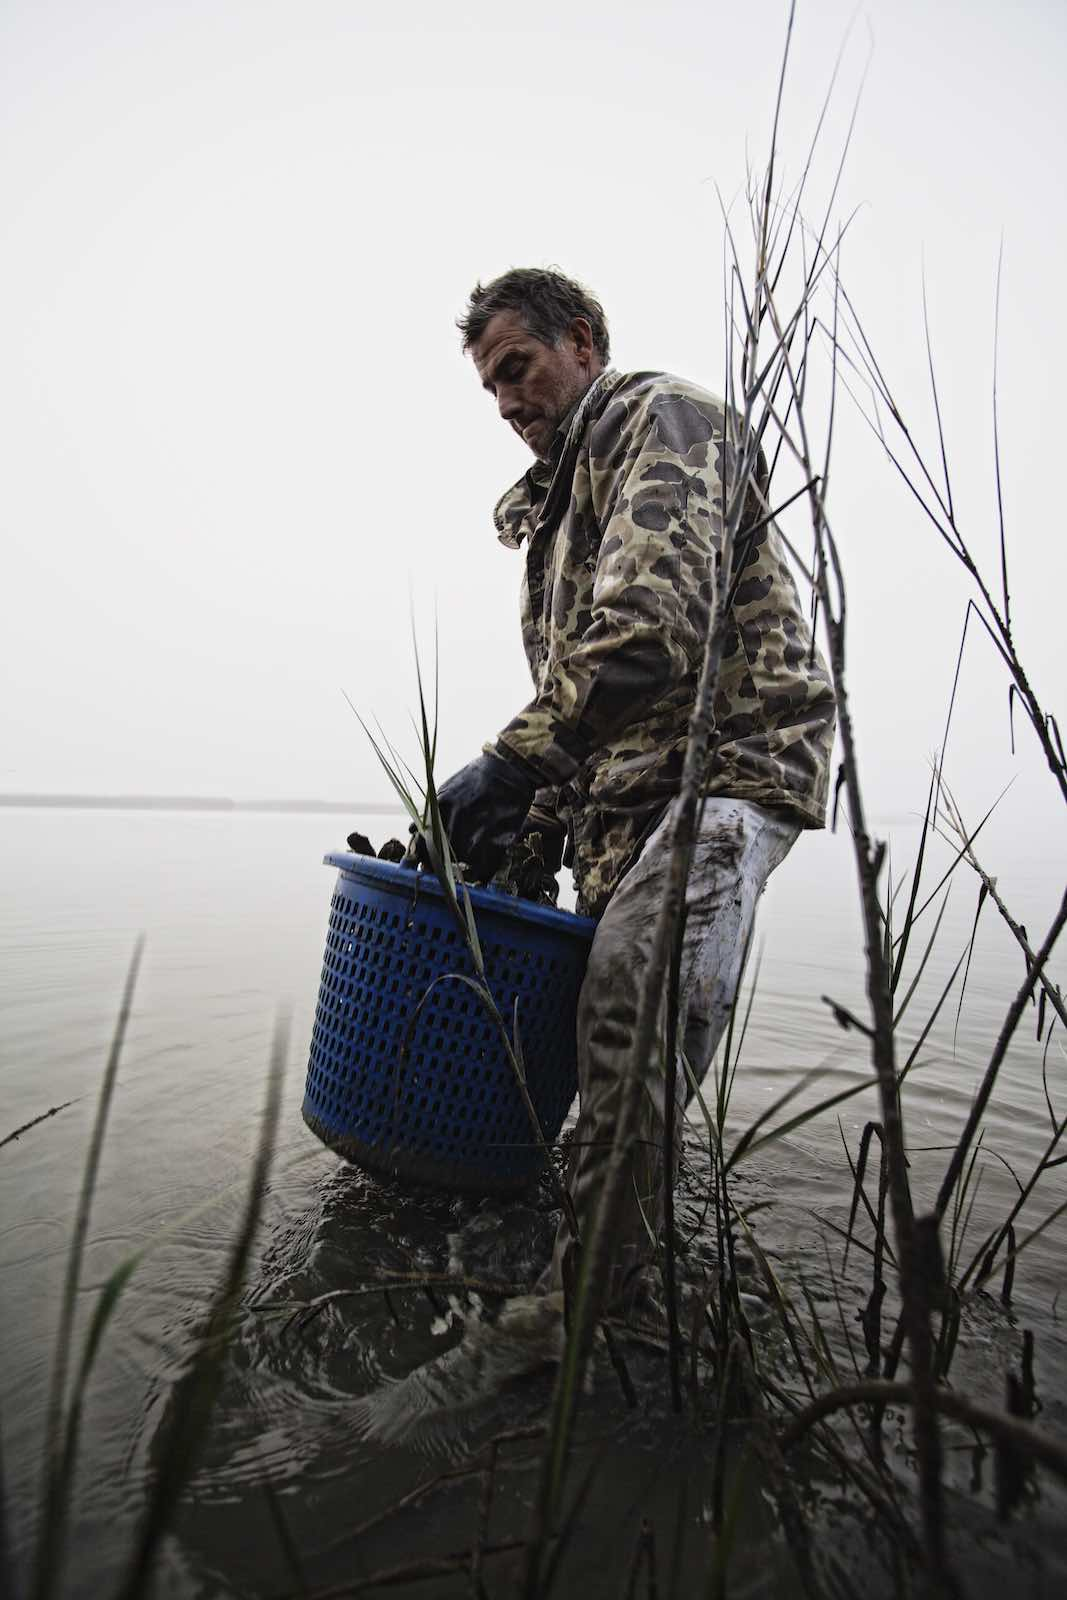 oyster_harvest_photography-14